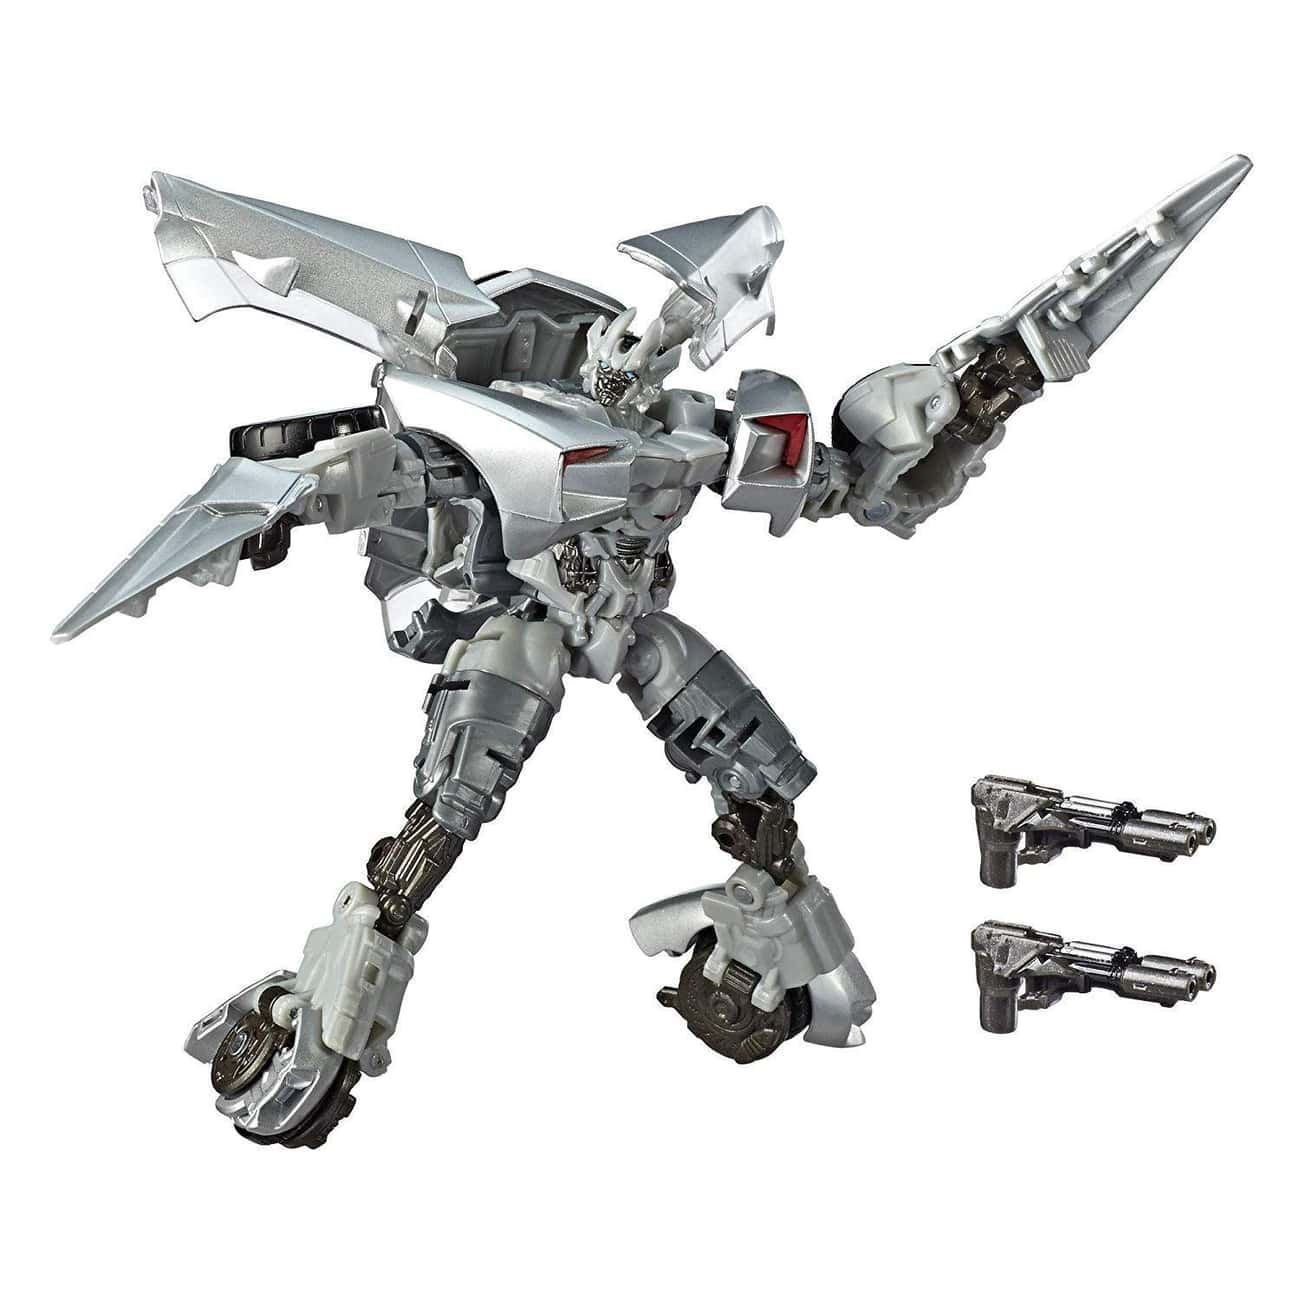 Transformers Studio Series Tra is listed (or ranked) 3 on the list The Best Transformers: Studio Series Toys, Ranked